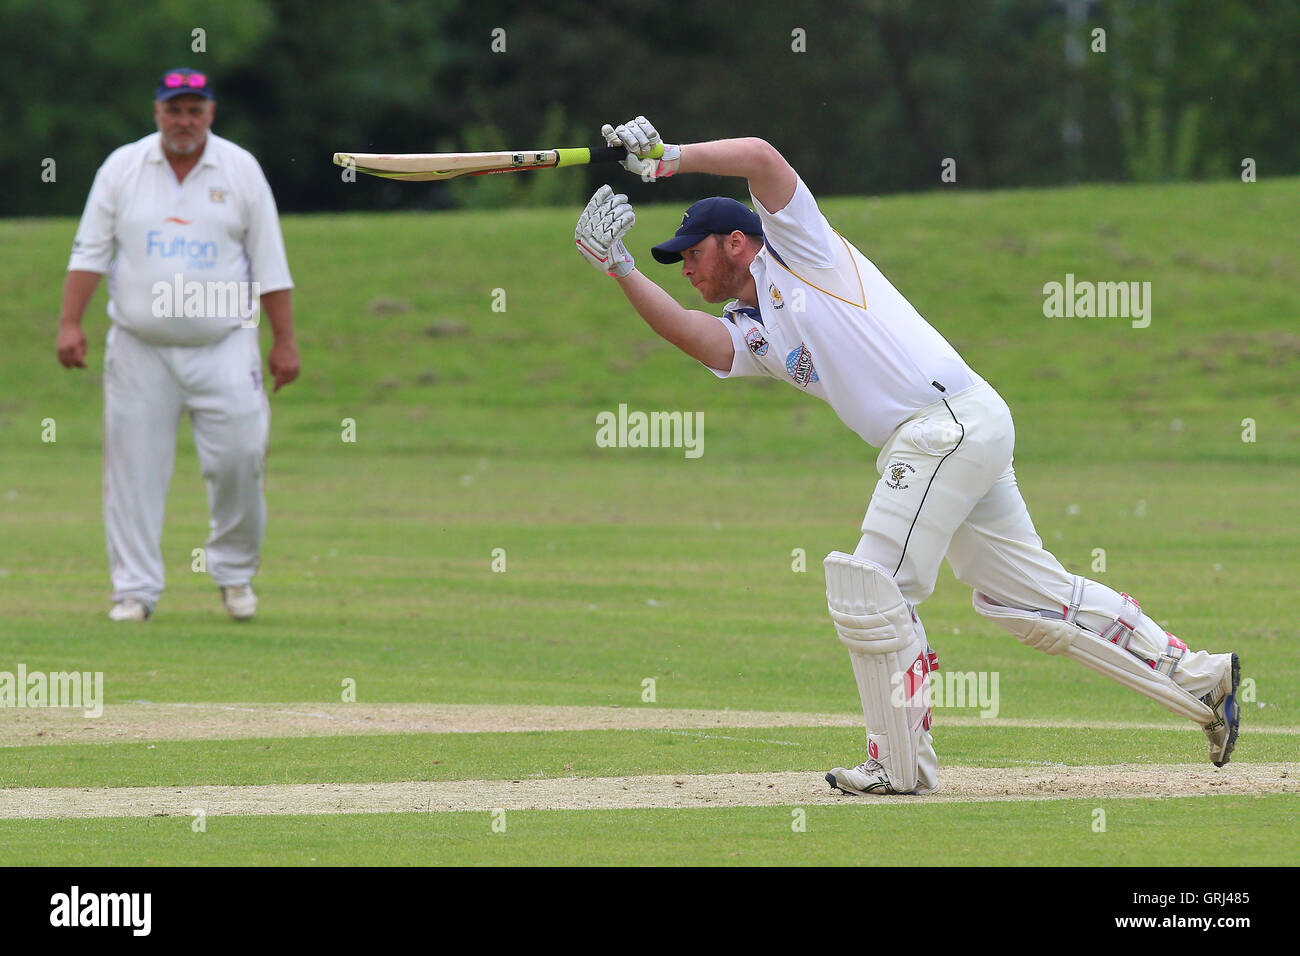 Paul Hurworth in batting action for Ardleigh Green during Ardleigh Green CC vs Westcliff-on-Sea CC, Shepherd Neame Stock Photo